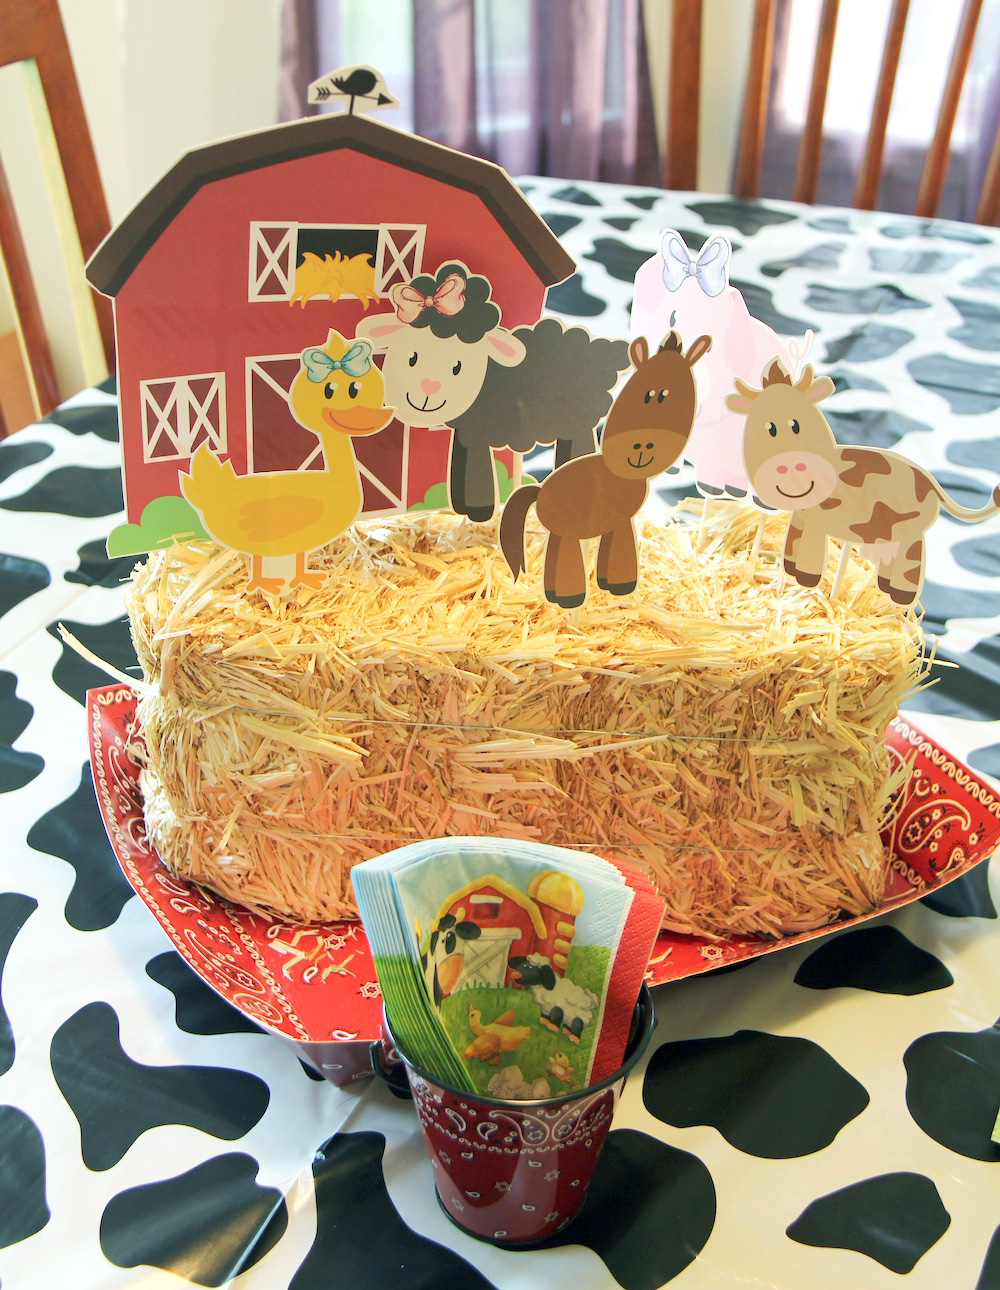 DIY Easy And Fun Barn Themed Birthday Party Centerpiece